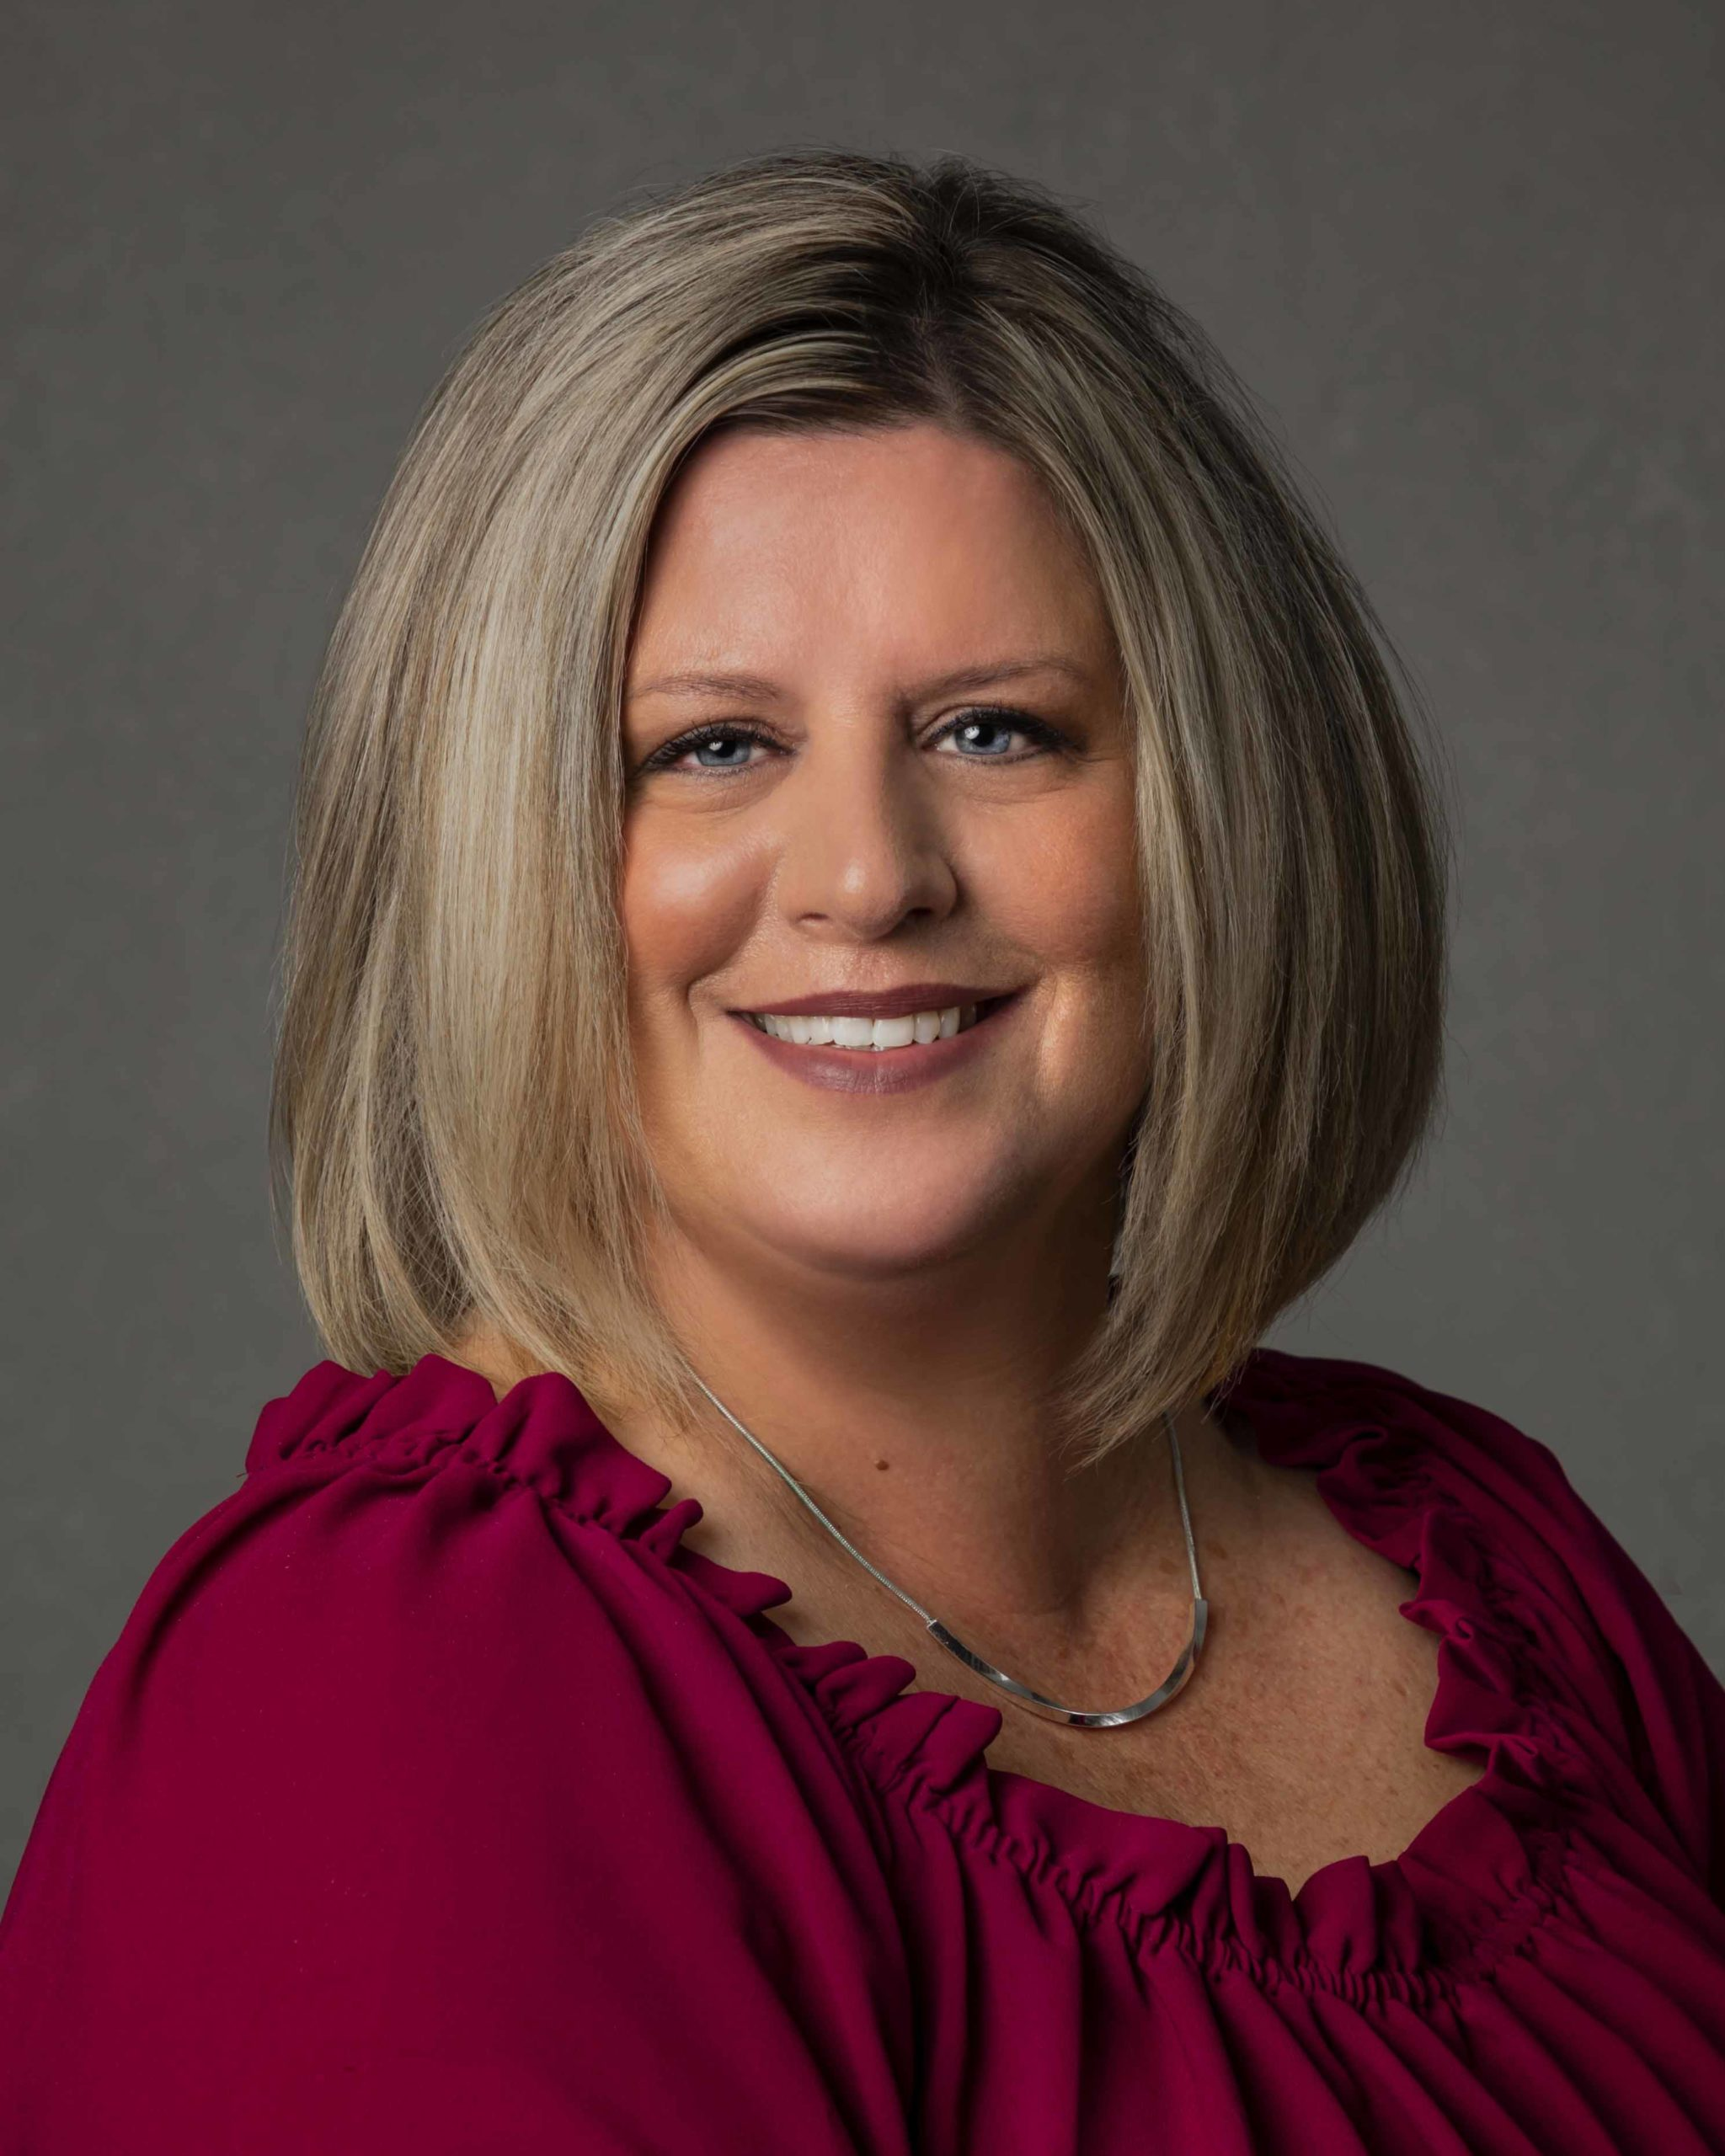 angela talbot patient service scheduling, administrative assistant